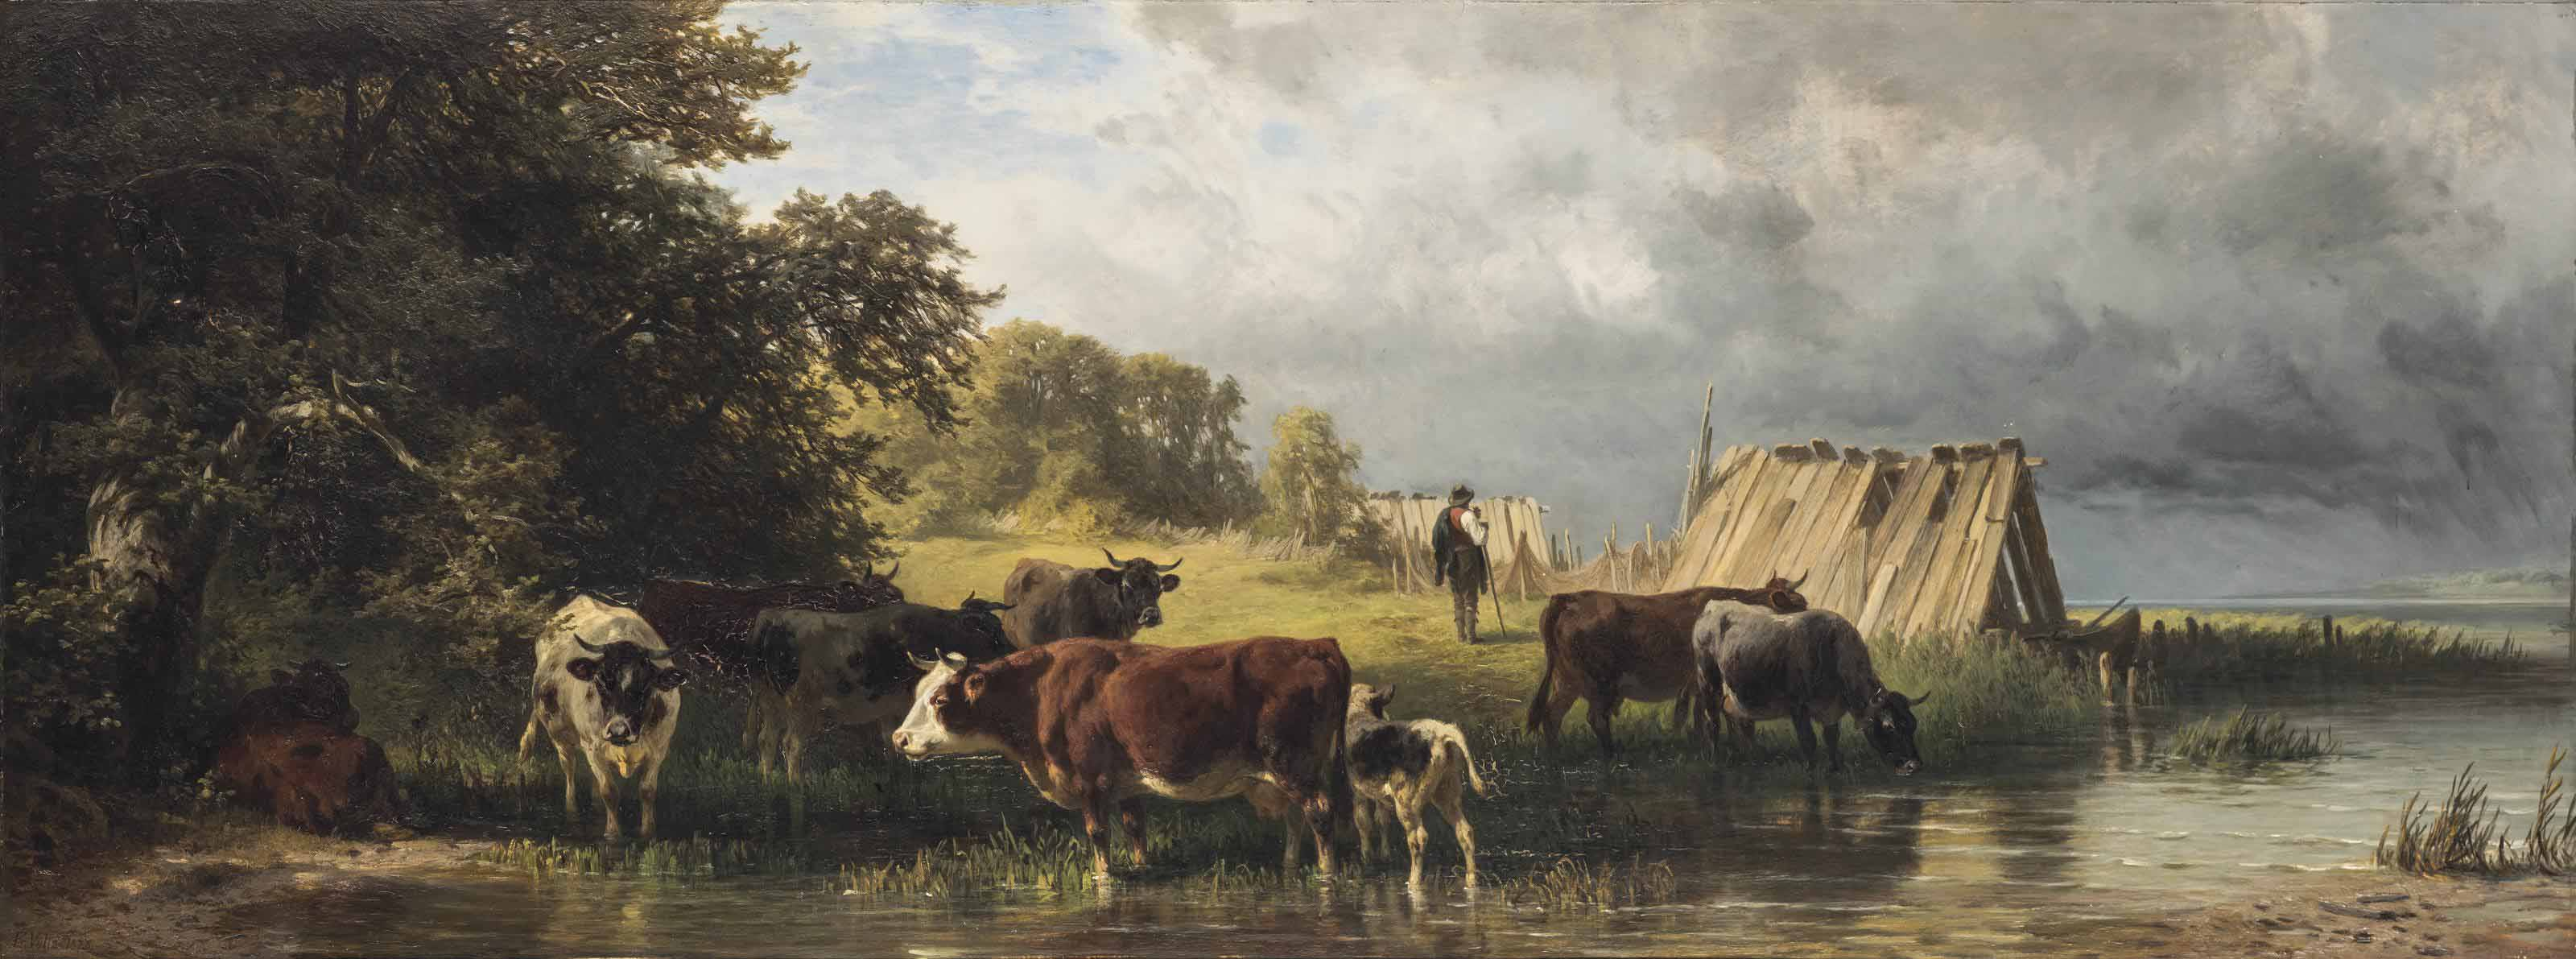 Cattle drinking from the river